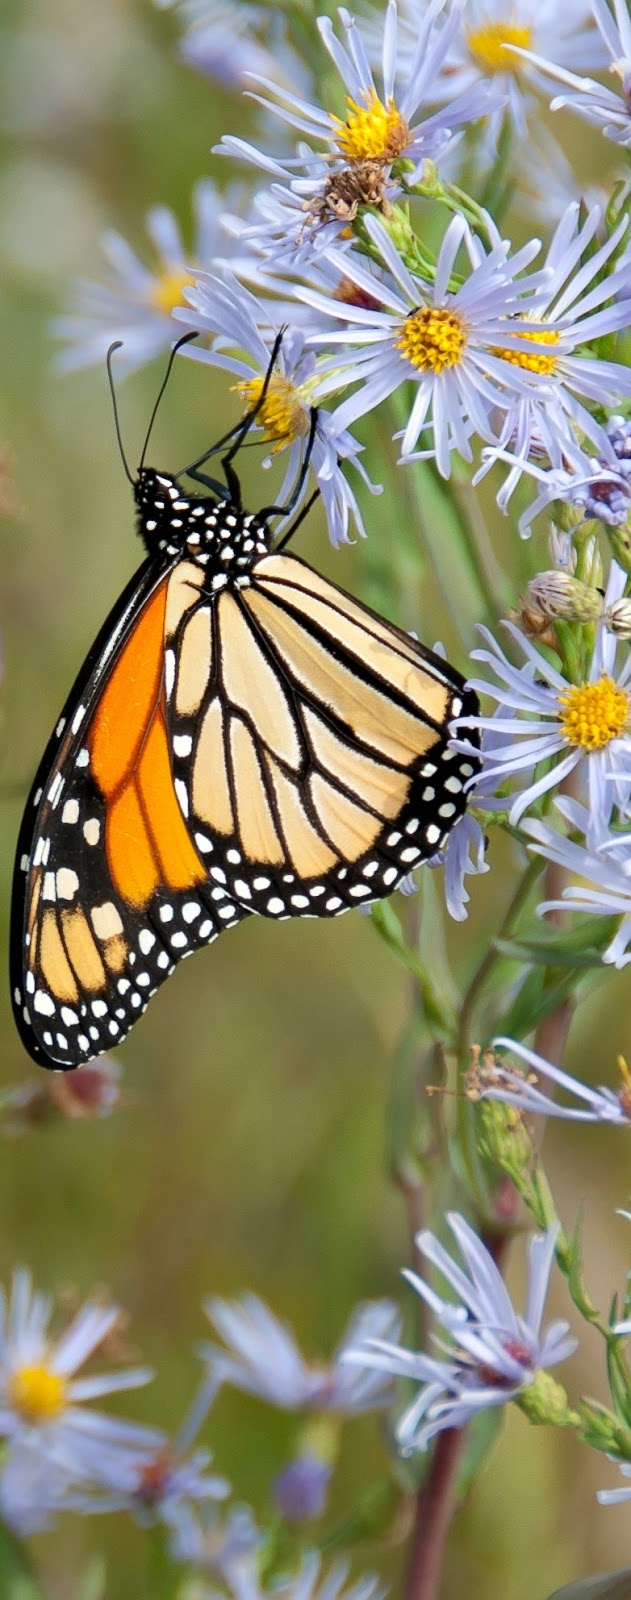 A monarch butterfly on white flower.